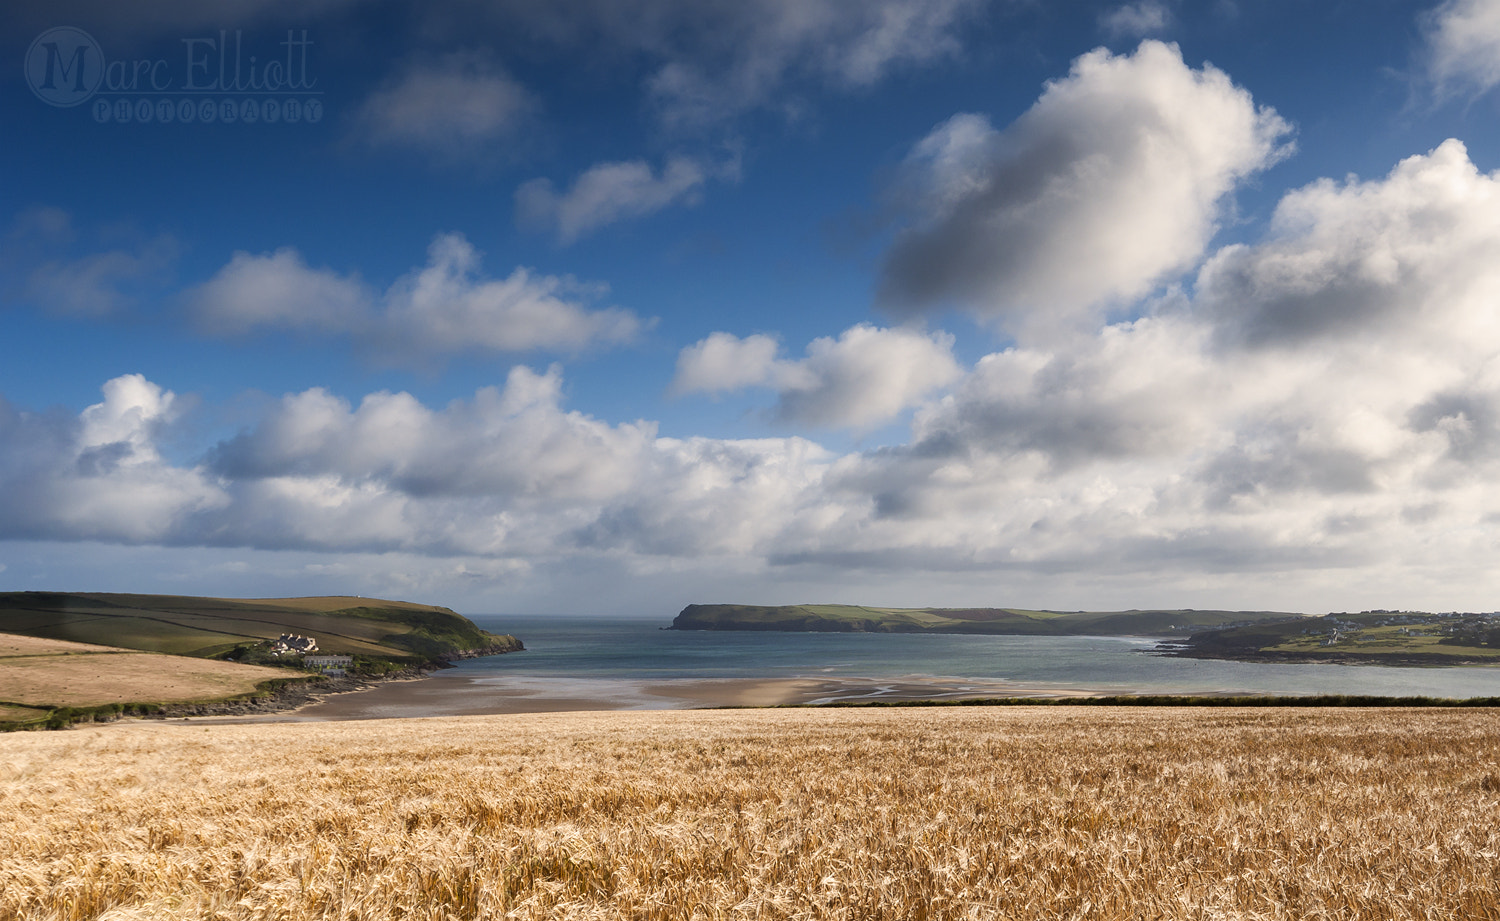 Photograph Tregirls to Hawkers Cove by Marc Elliott on 500px